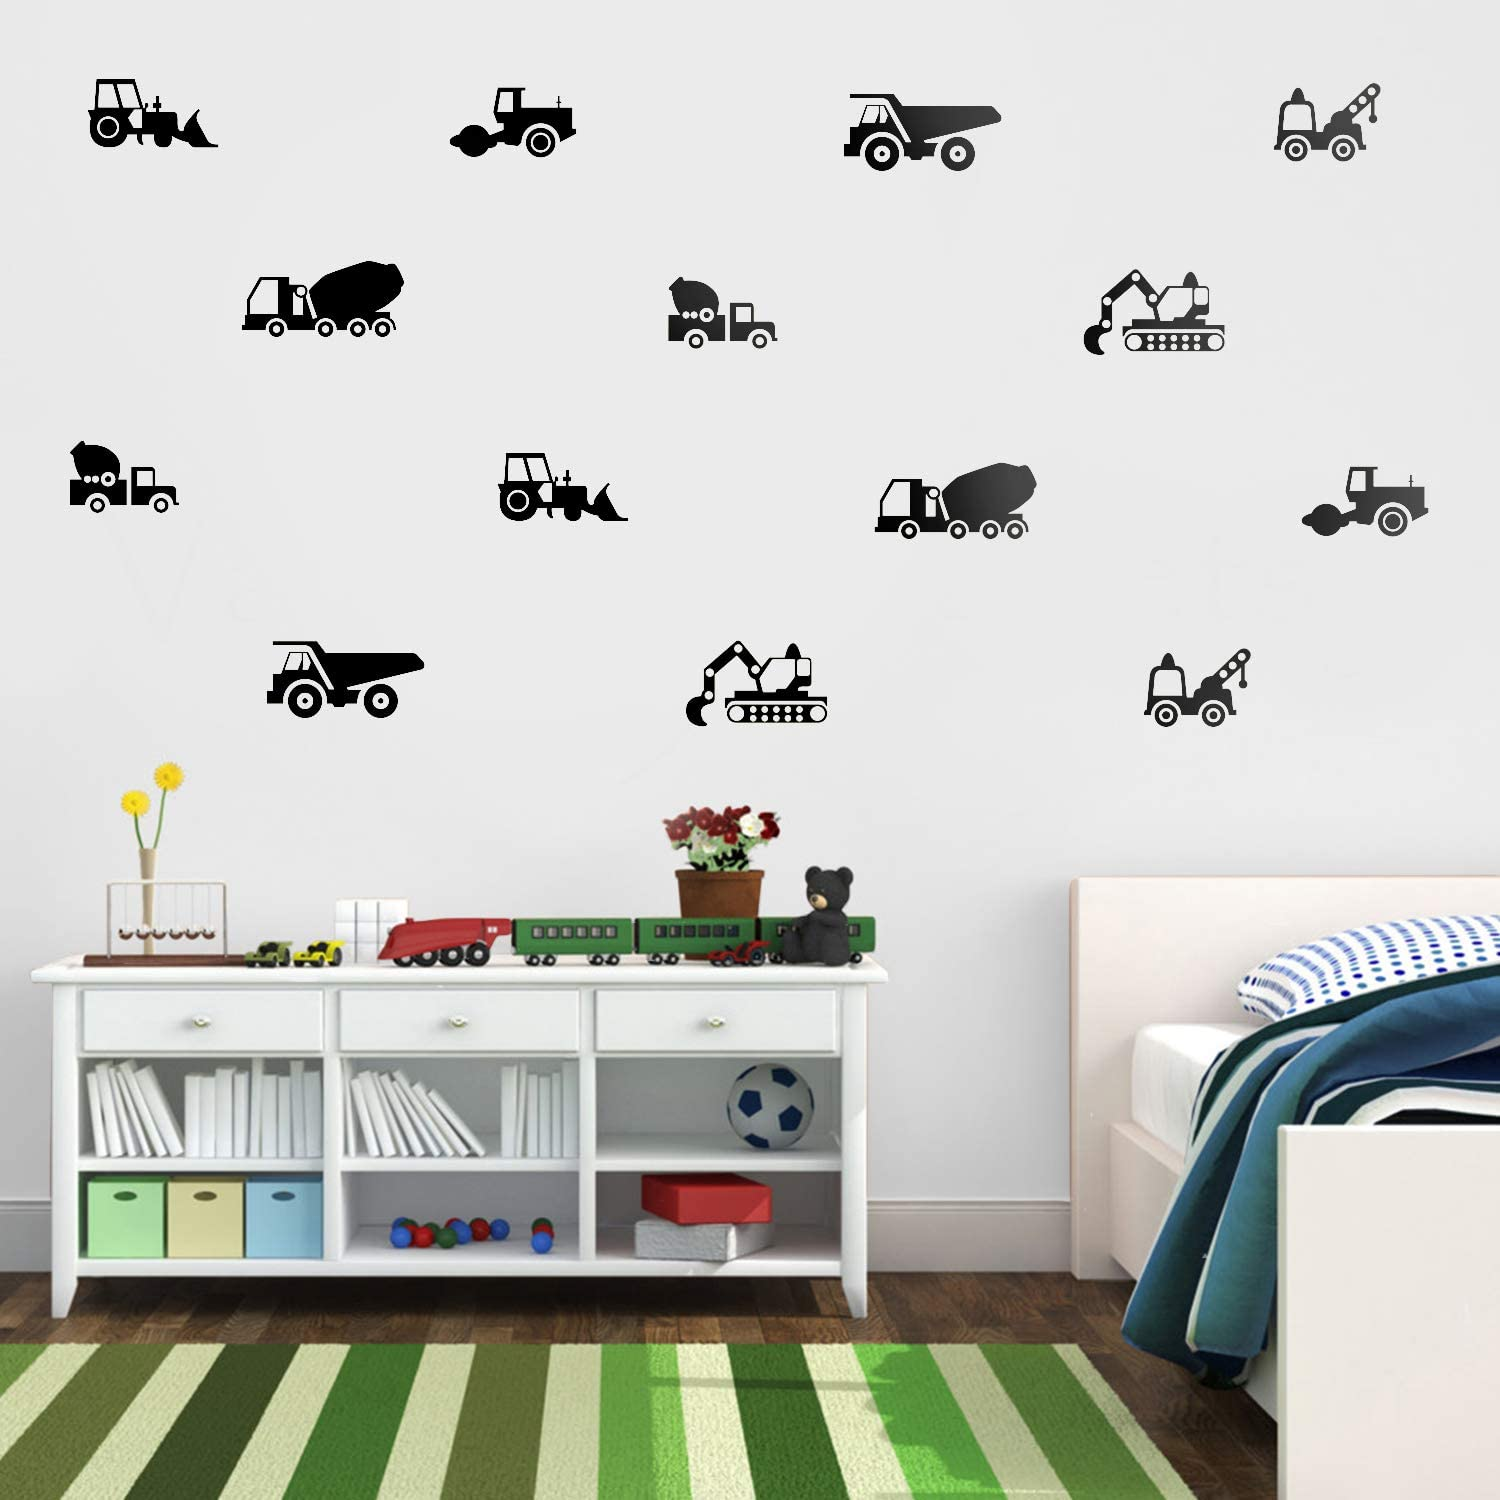 Set of 14 Vinyl Wall Art Decals - Construction Vehicles - from 3